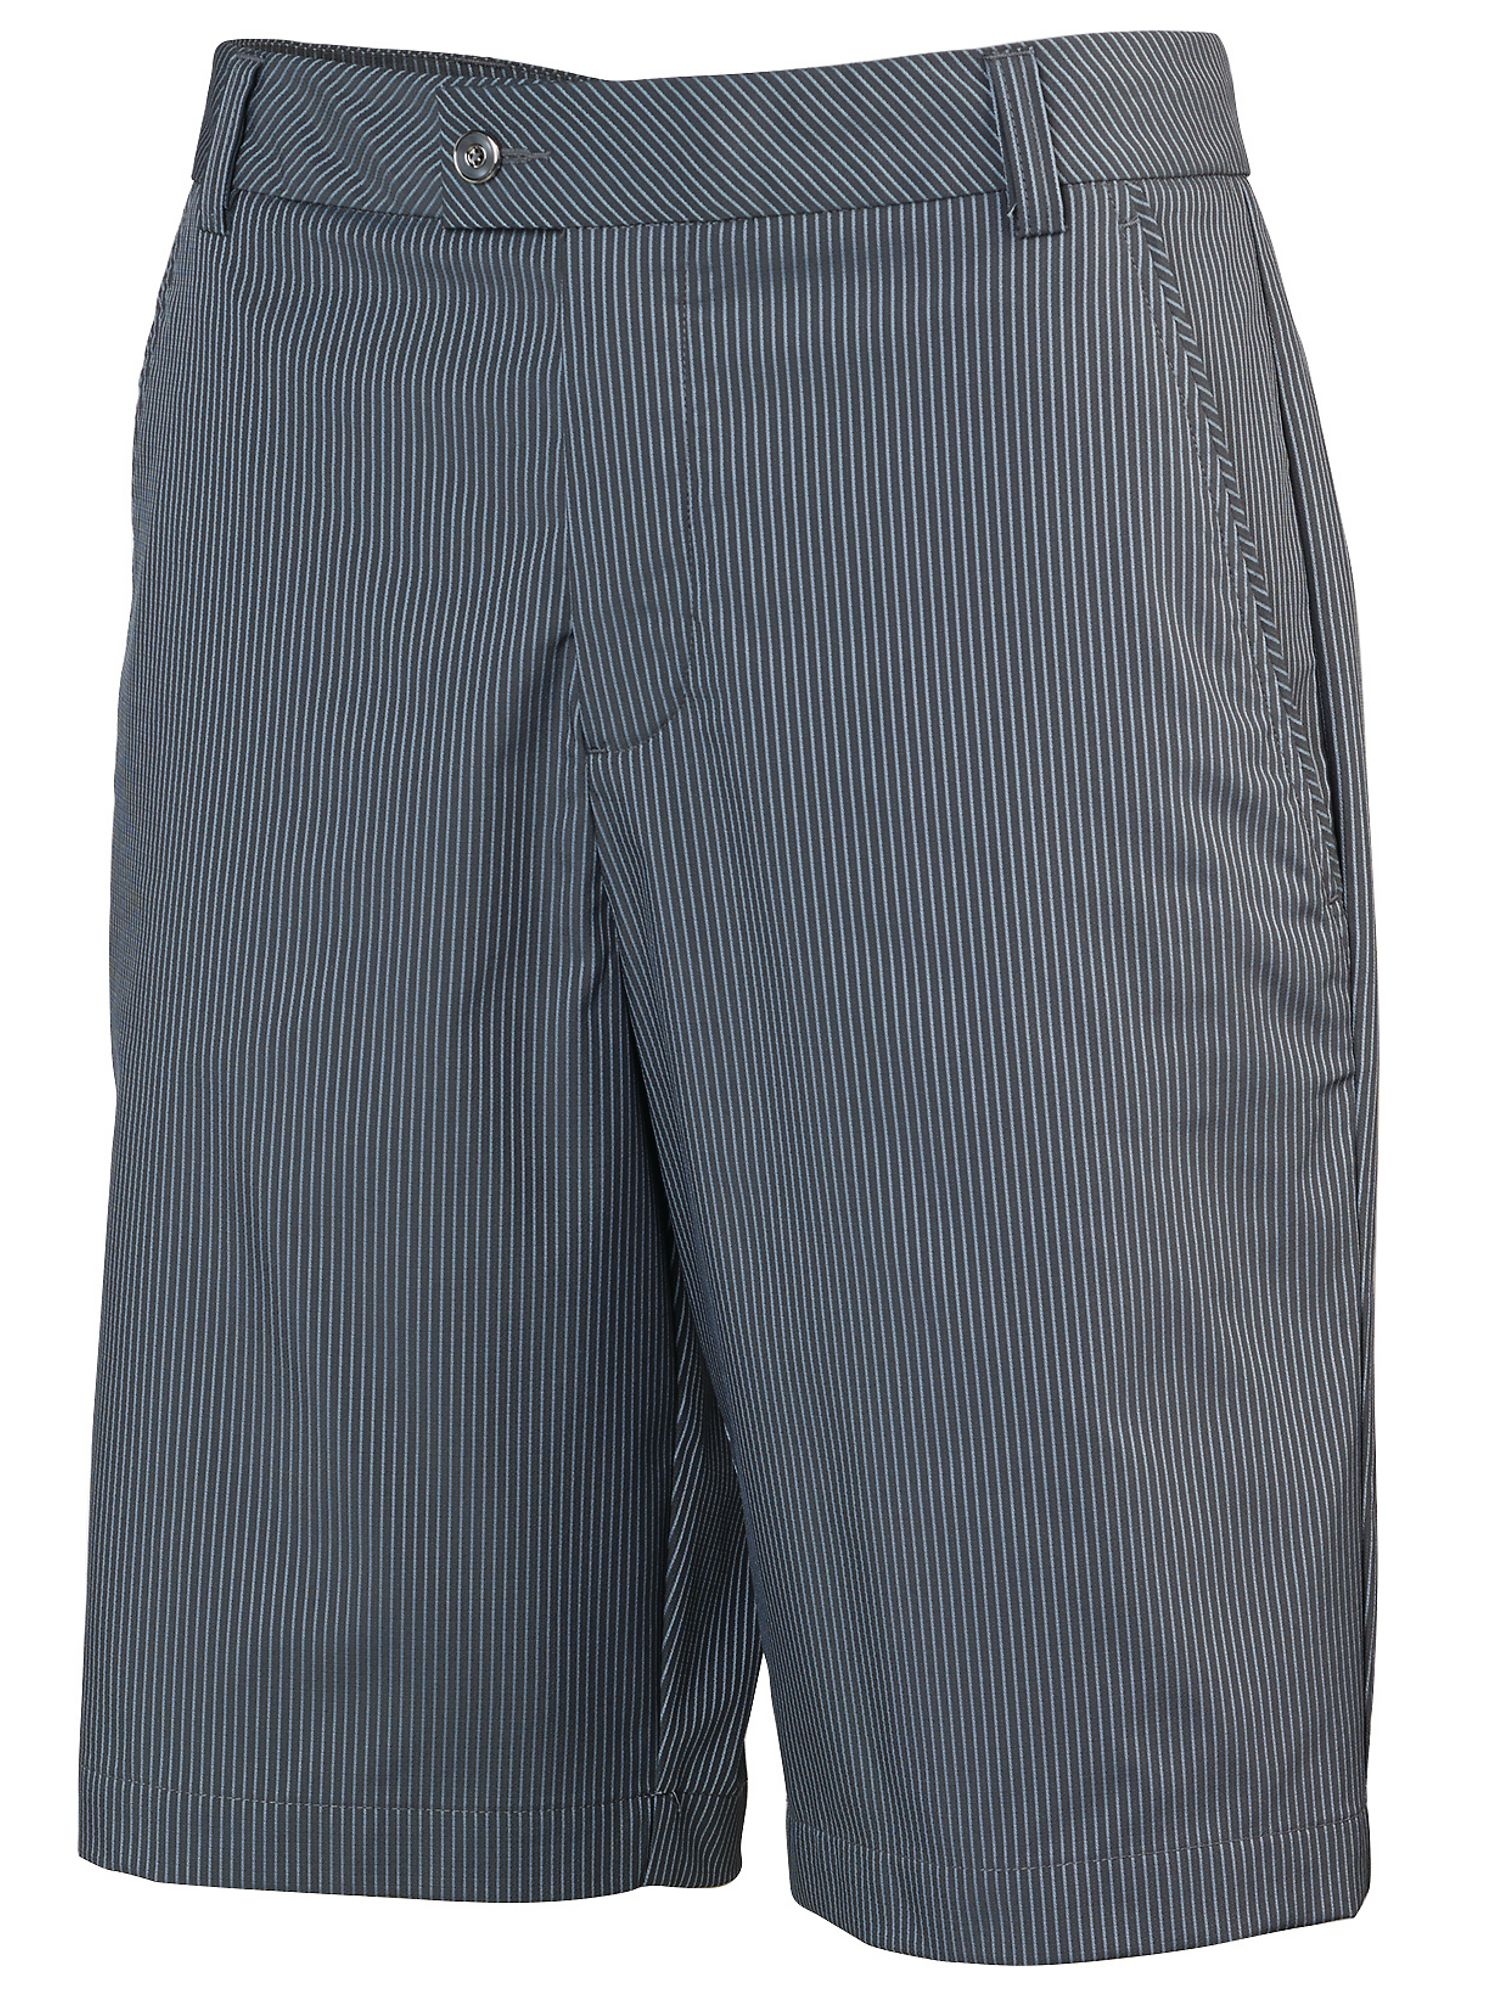 Lux stripe tech shorts